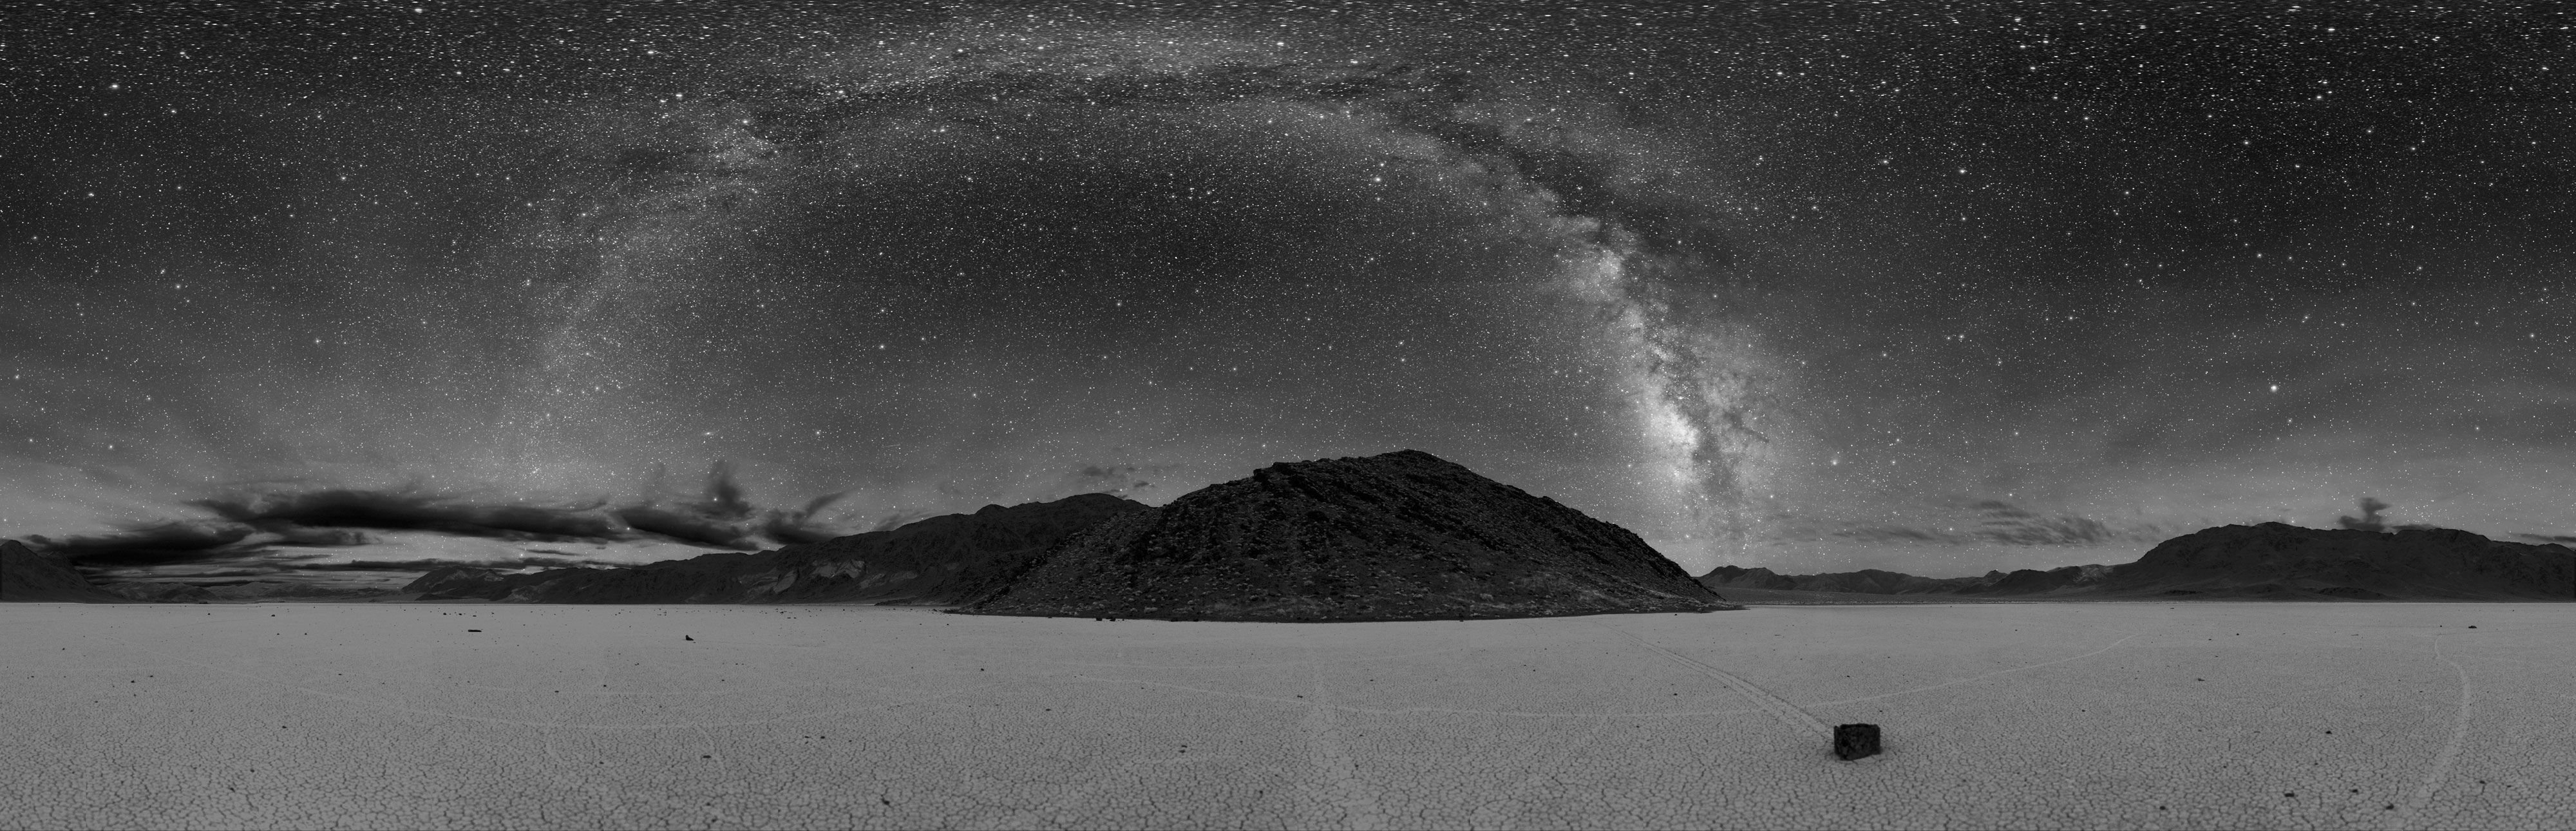 Death Valley View of Milky Way Galaxy - Click to Enlarge